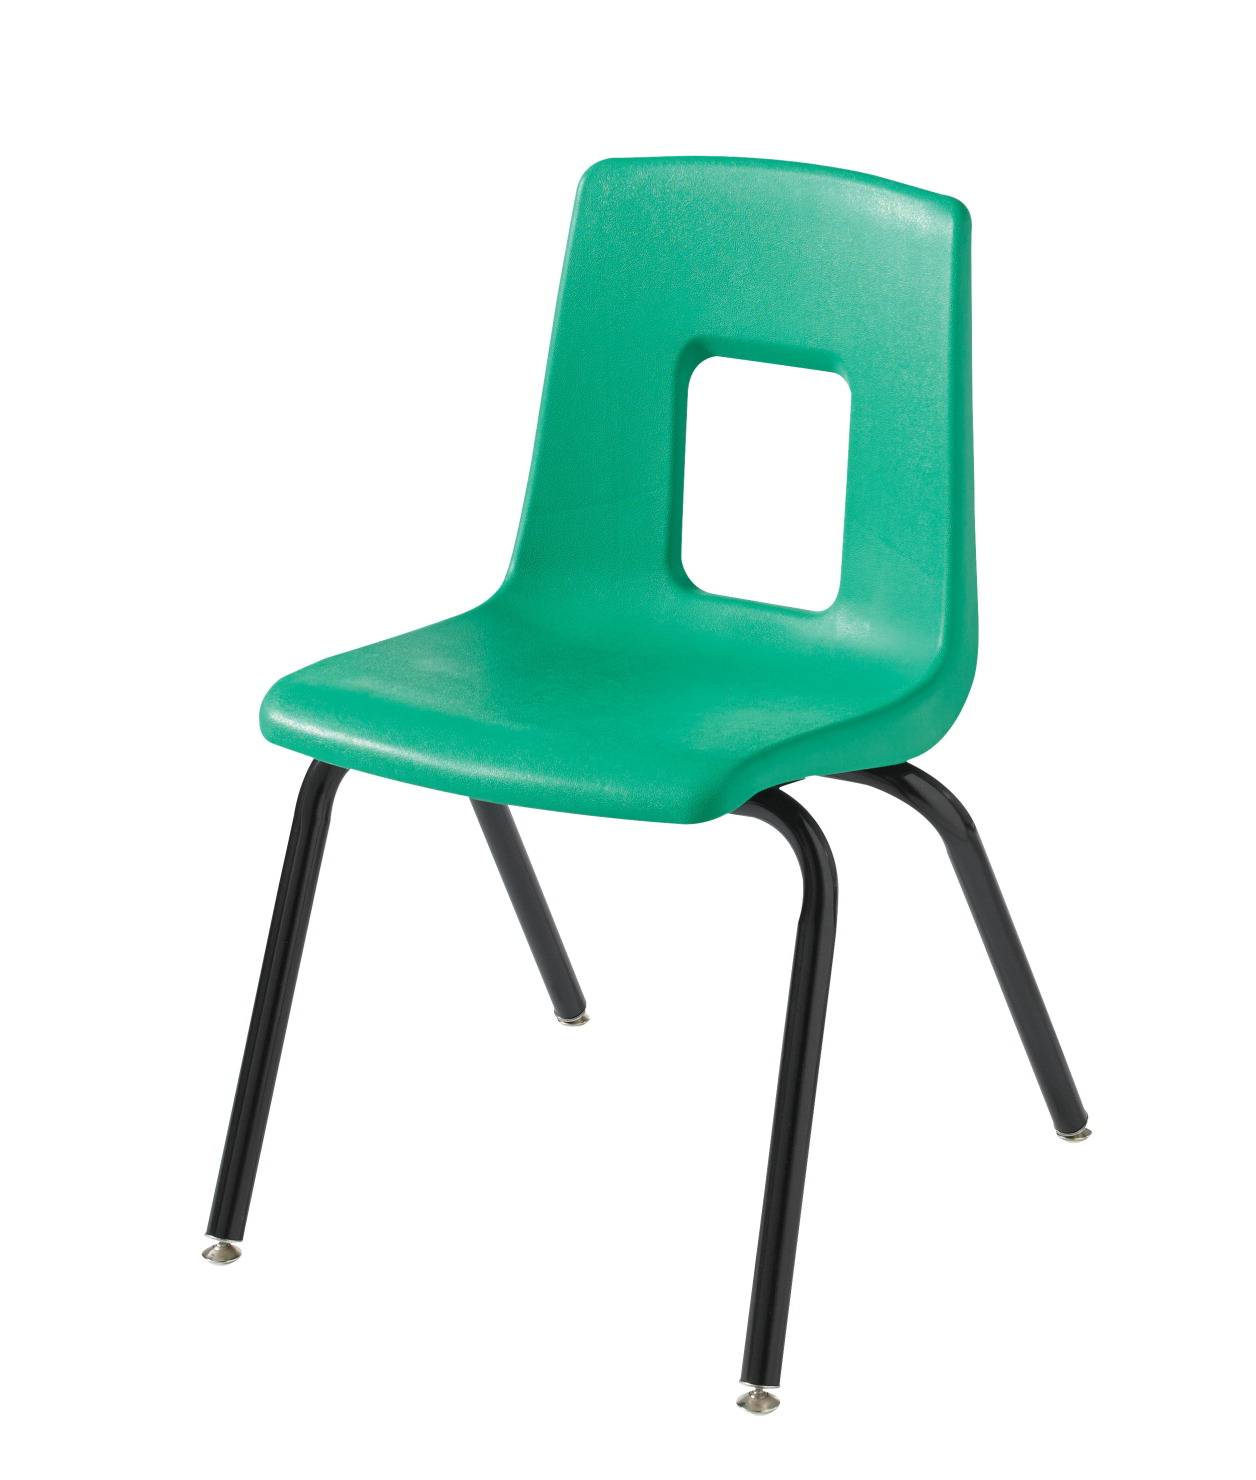 Amazing Classroom Select Traditional Chair 15 1 2 Inch Seat Height Black Frame Various Options Bralicious Painted Fabric Chair Ideas Braliciousco